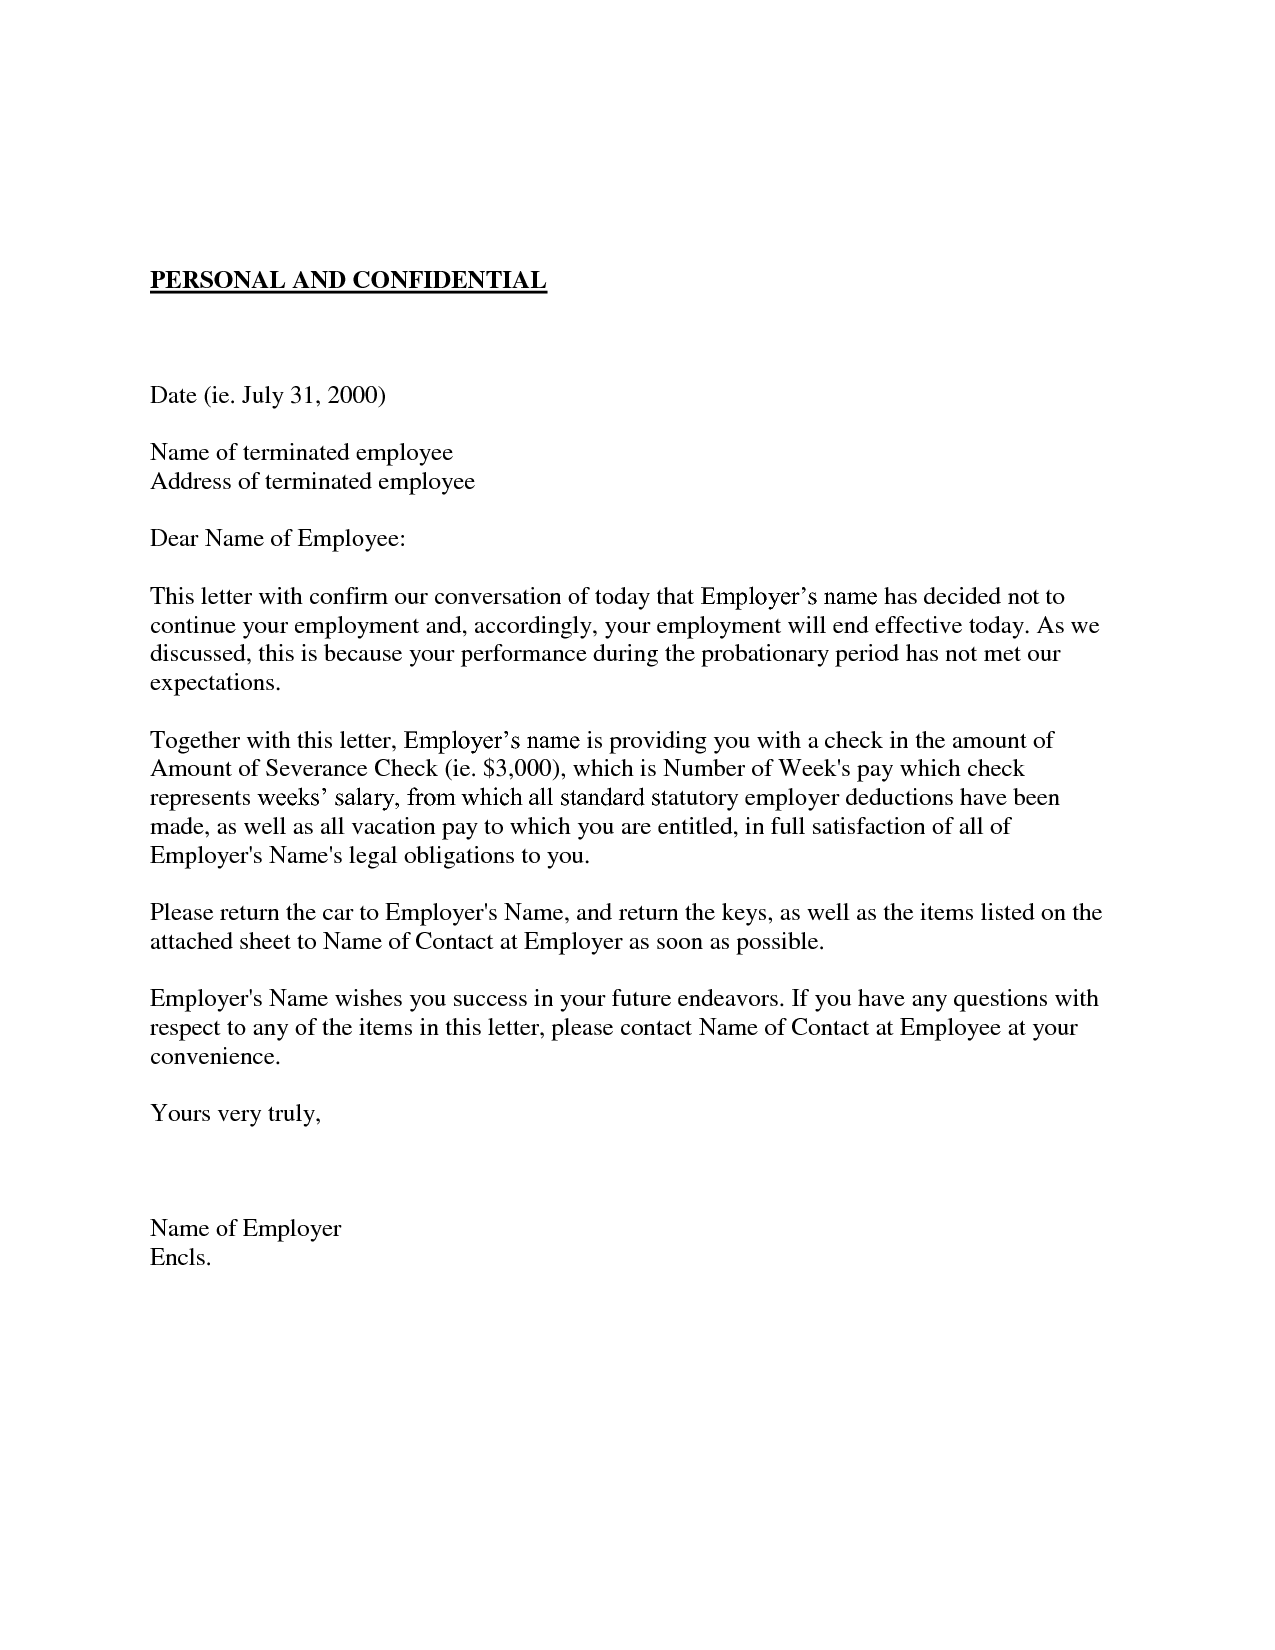 Resignation letter unsatisfactory tim blogwriting a letter of resignation letter unsatisfactory tim blogwriting a letter of resignation email letter sample spiritdancerdesigns Image collections